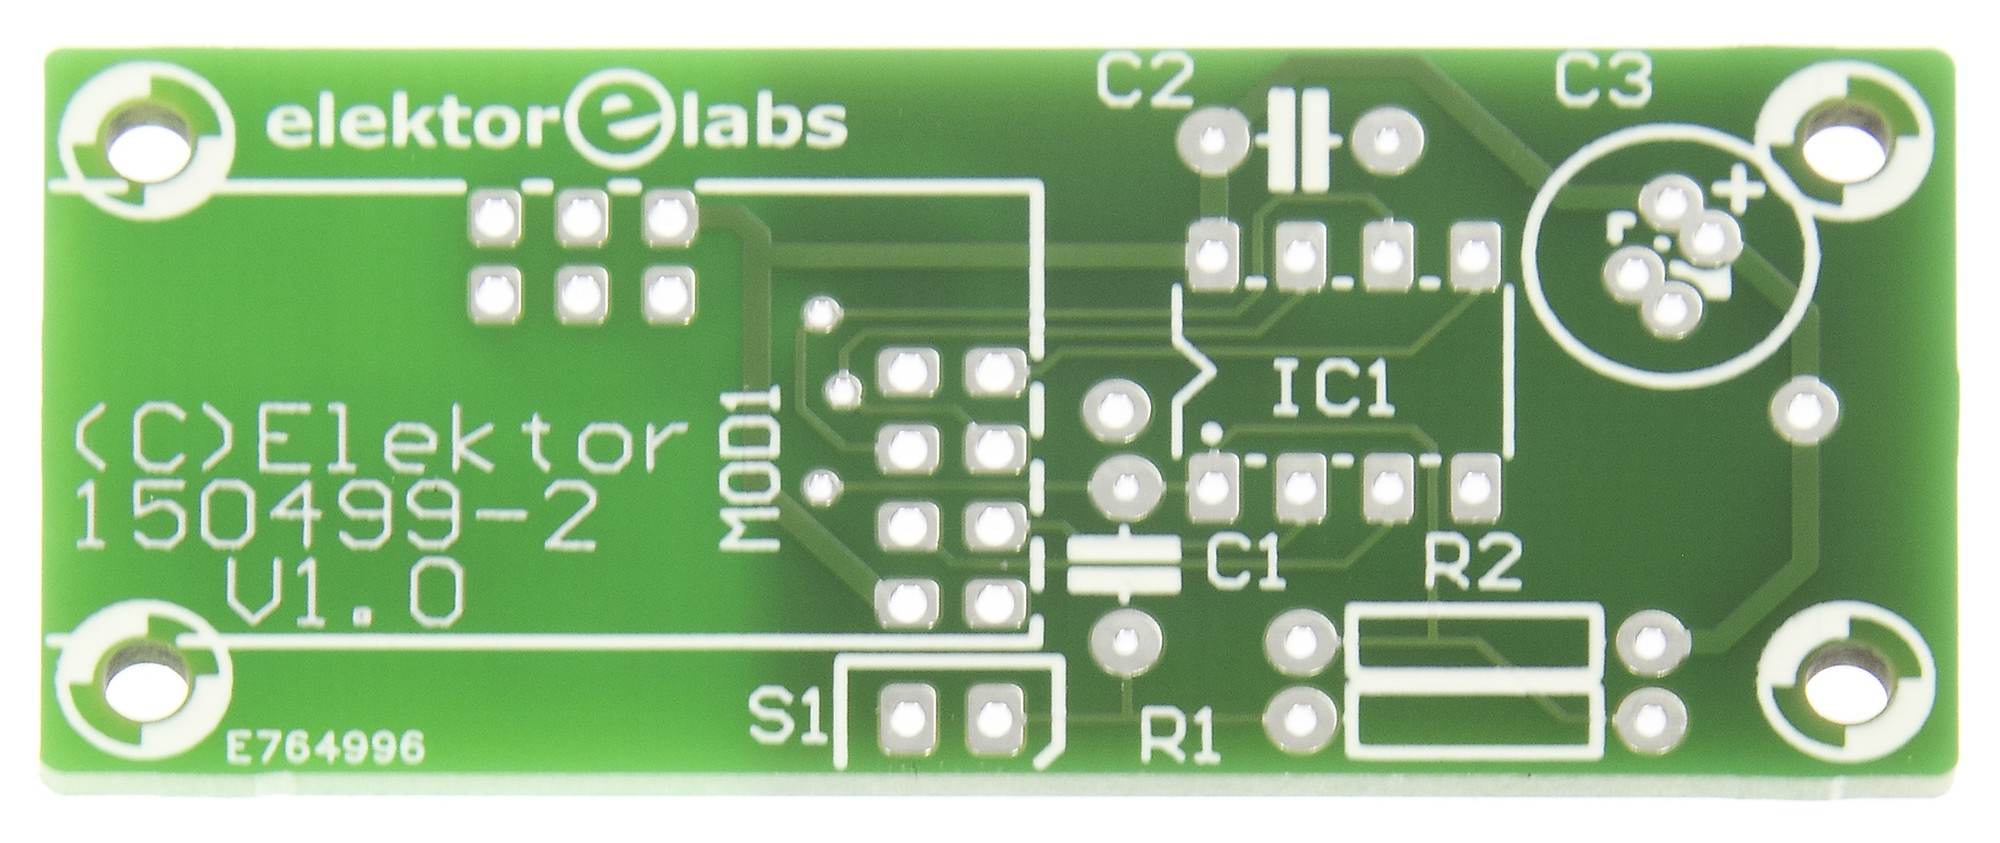 Wireless Quiz Button transmitter pcb (150499-2)